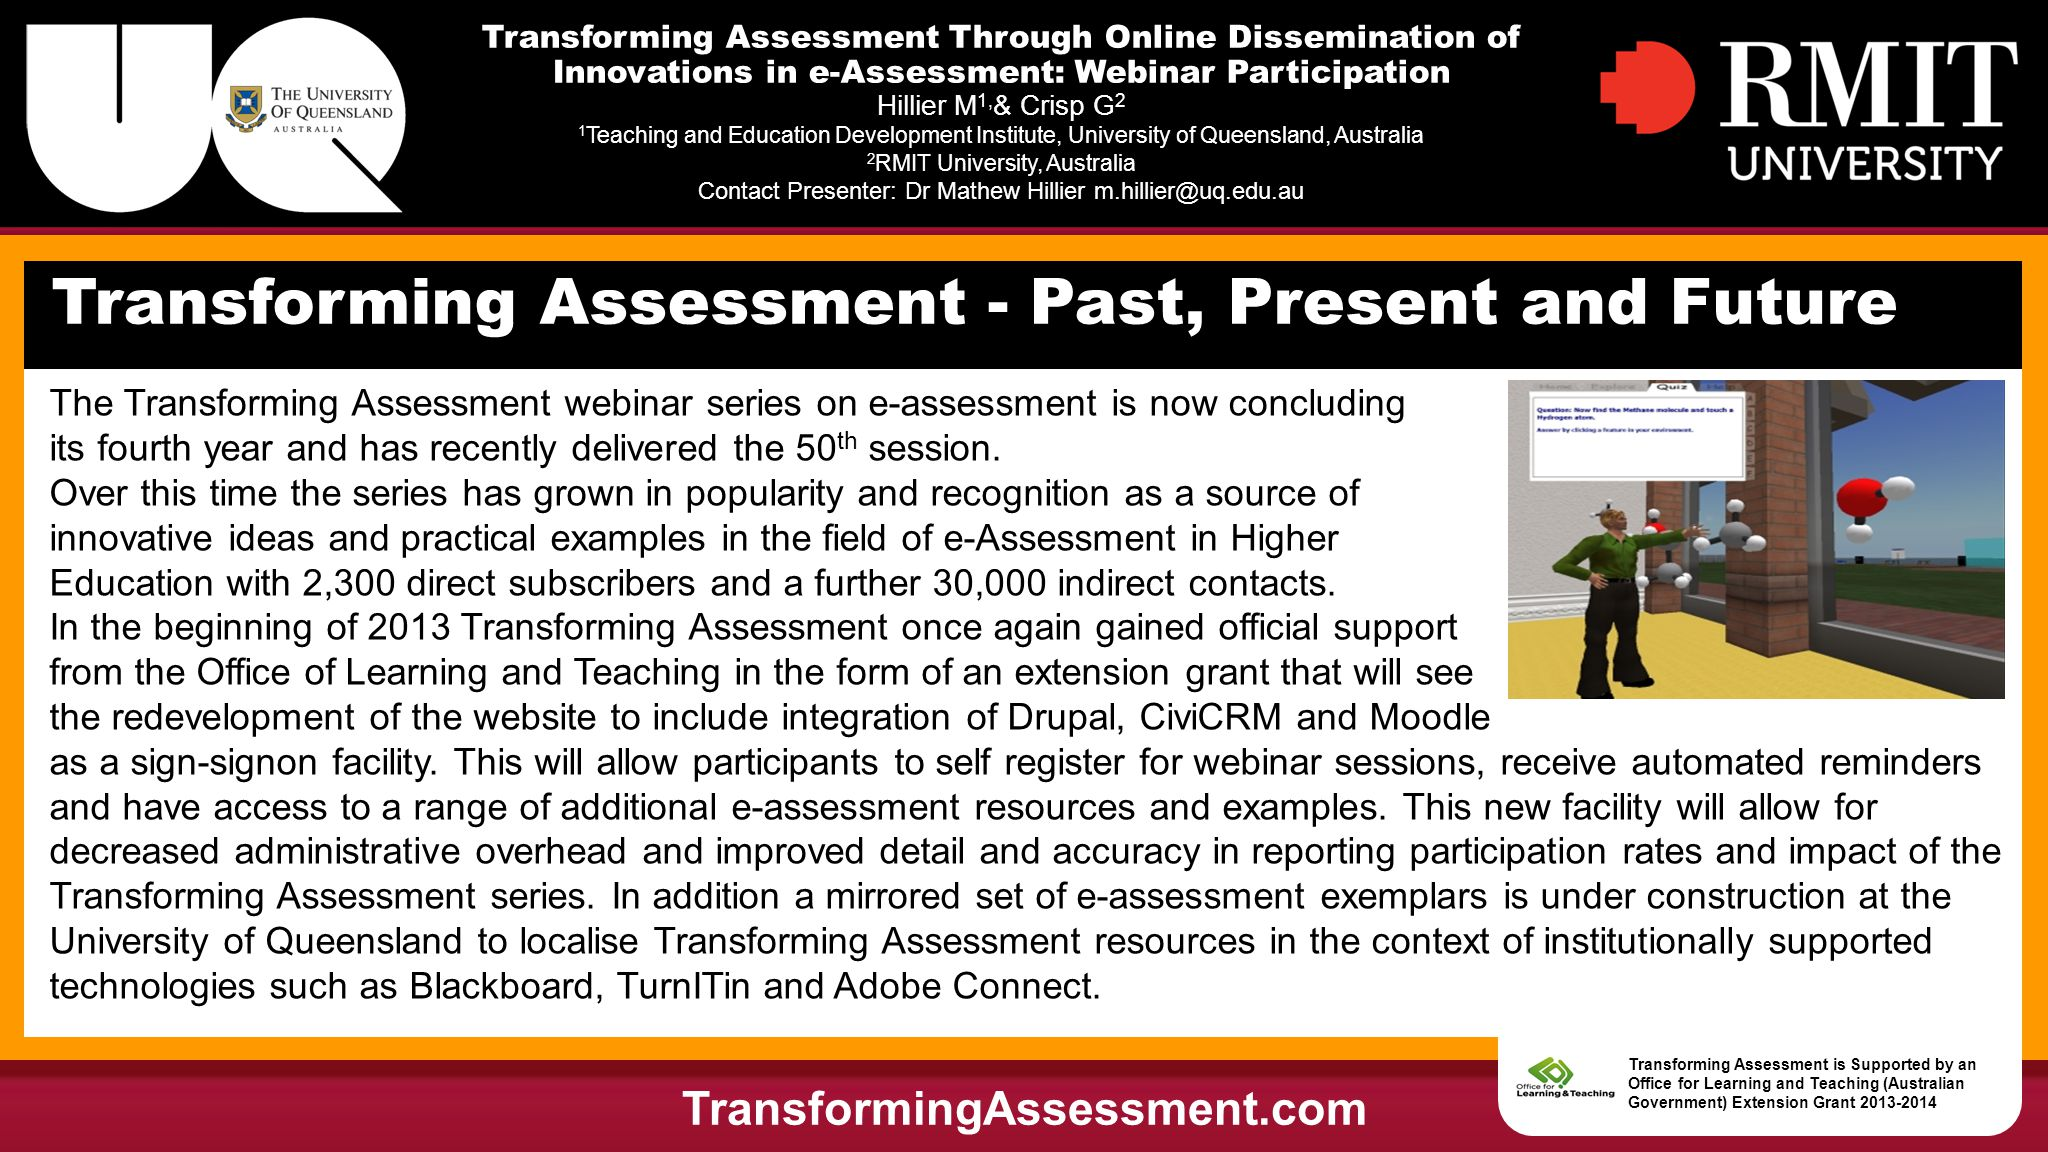 Transforming Assessment Through Online Dissemination of Innovations in e-Assessment: Webinar Participation Hillier M 1, & Crisp G 2 1 Teaching and Education Development Institute, University of Queensland, Australia 2 RMIT University, Australia Contact Presenter: Dr Mathew Hillier m.hillier@uq.edu.au 50+ Videos Showcasing Innovations in e-Assessment TransformingAssessment.com Transforming Assessment is Supported by an Office for Learning and Teaching (Australian Government) Extension Grant 2013-2014